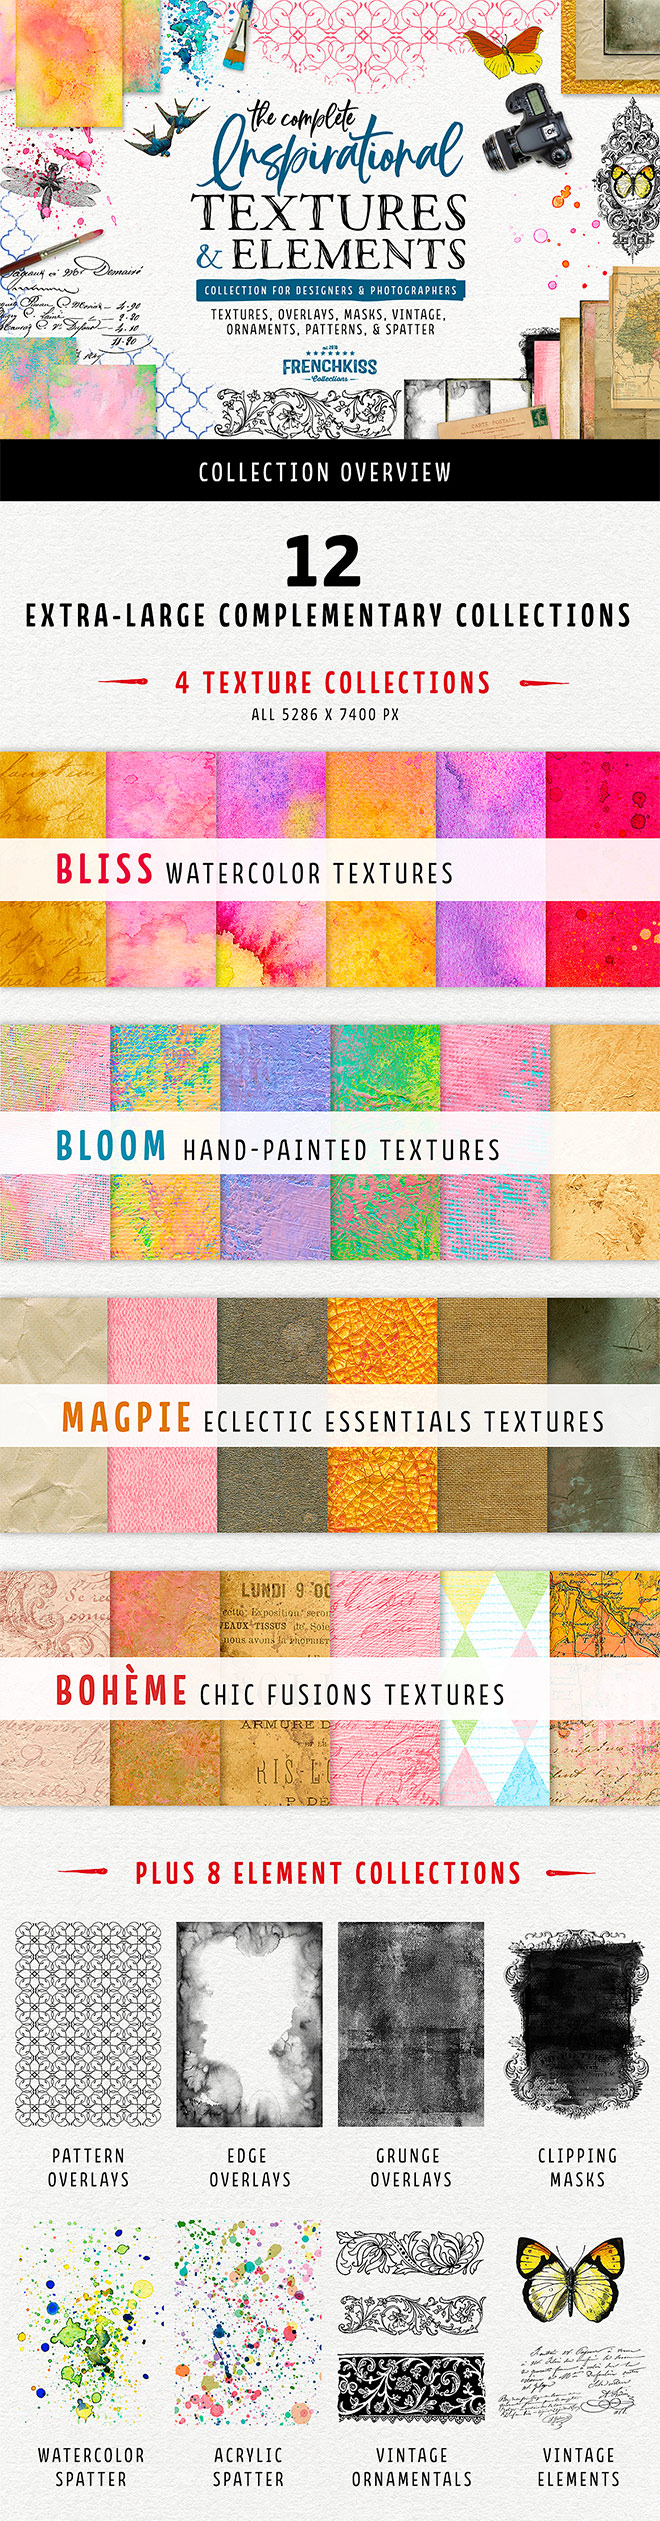 textures elements - Huge Discounts on Exclusive New Products at the Design Cuts Birthday Event